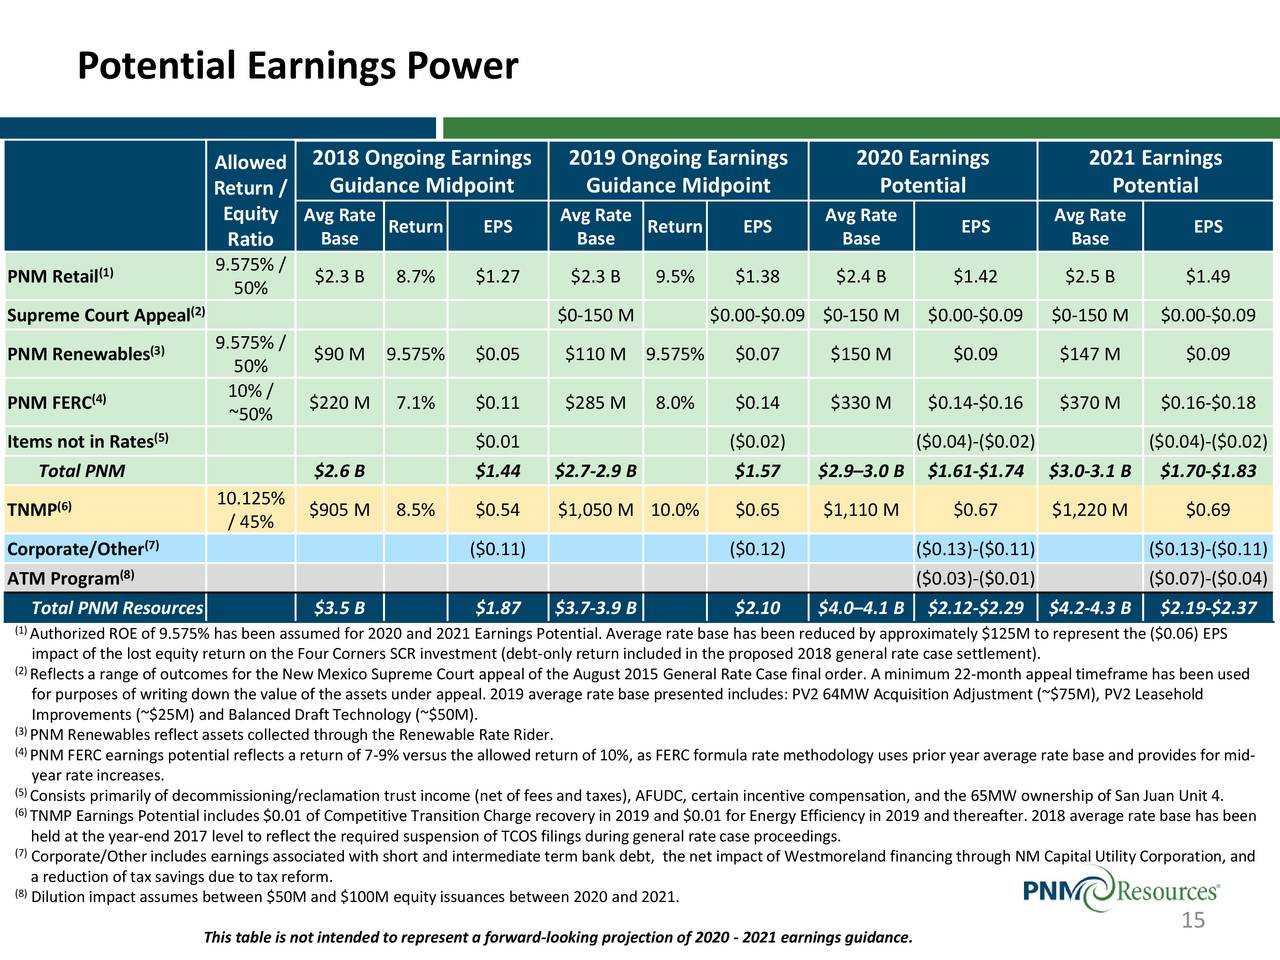 PNM Resources, Inc. 2018 Q1